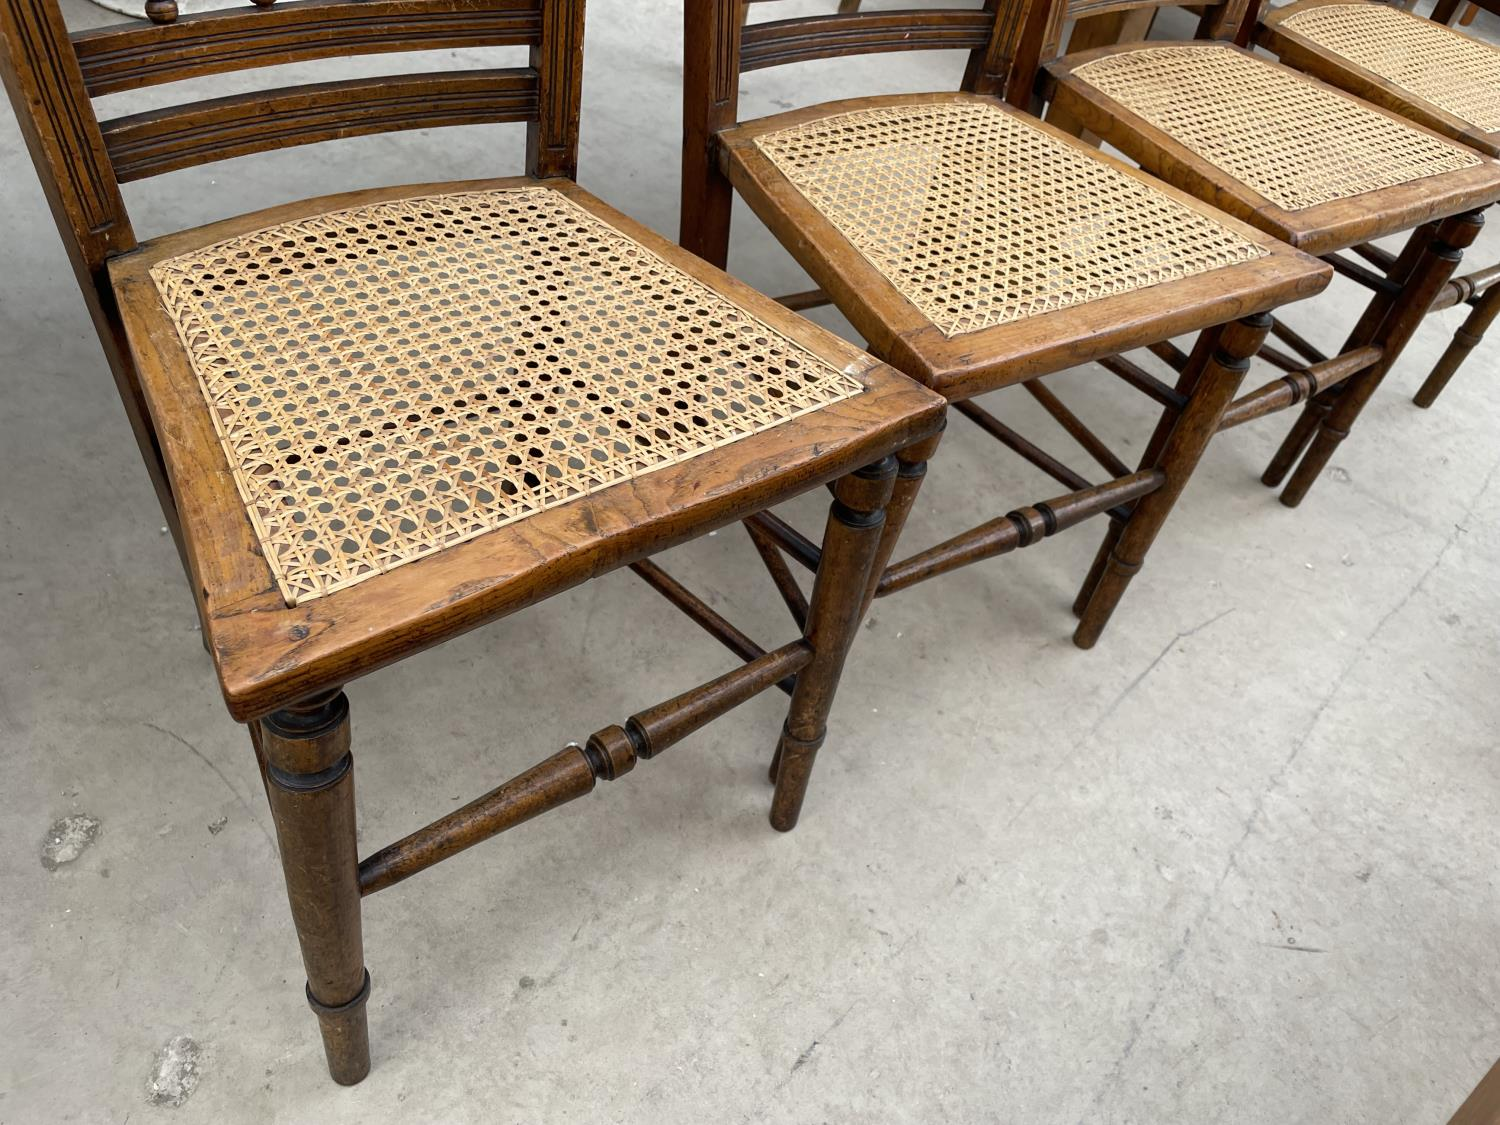 A SET OF FOUR EDWARDIAN BEDROOM CHAIRS WITH CANE SEATS - Image 3 of 5